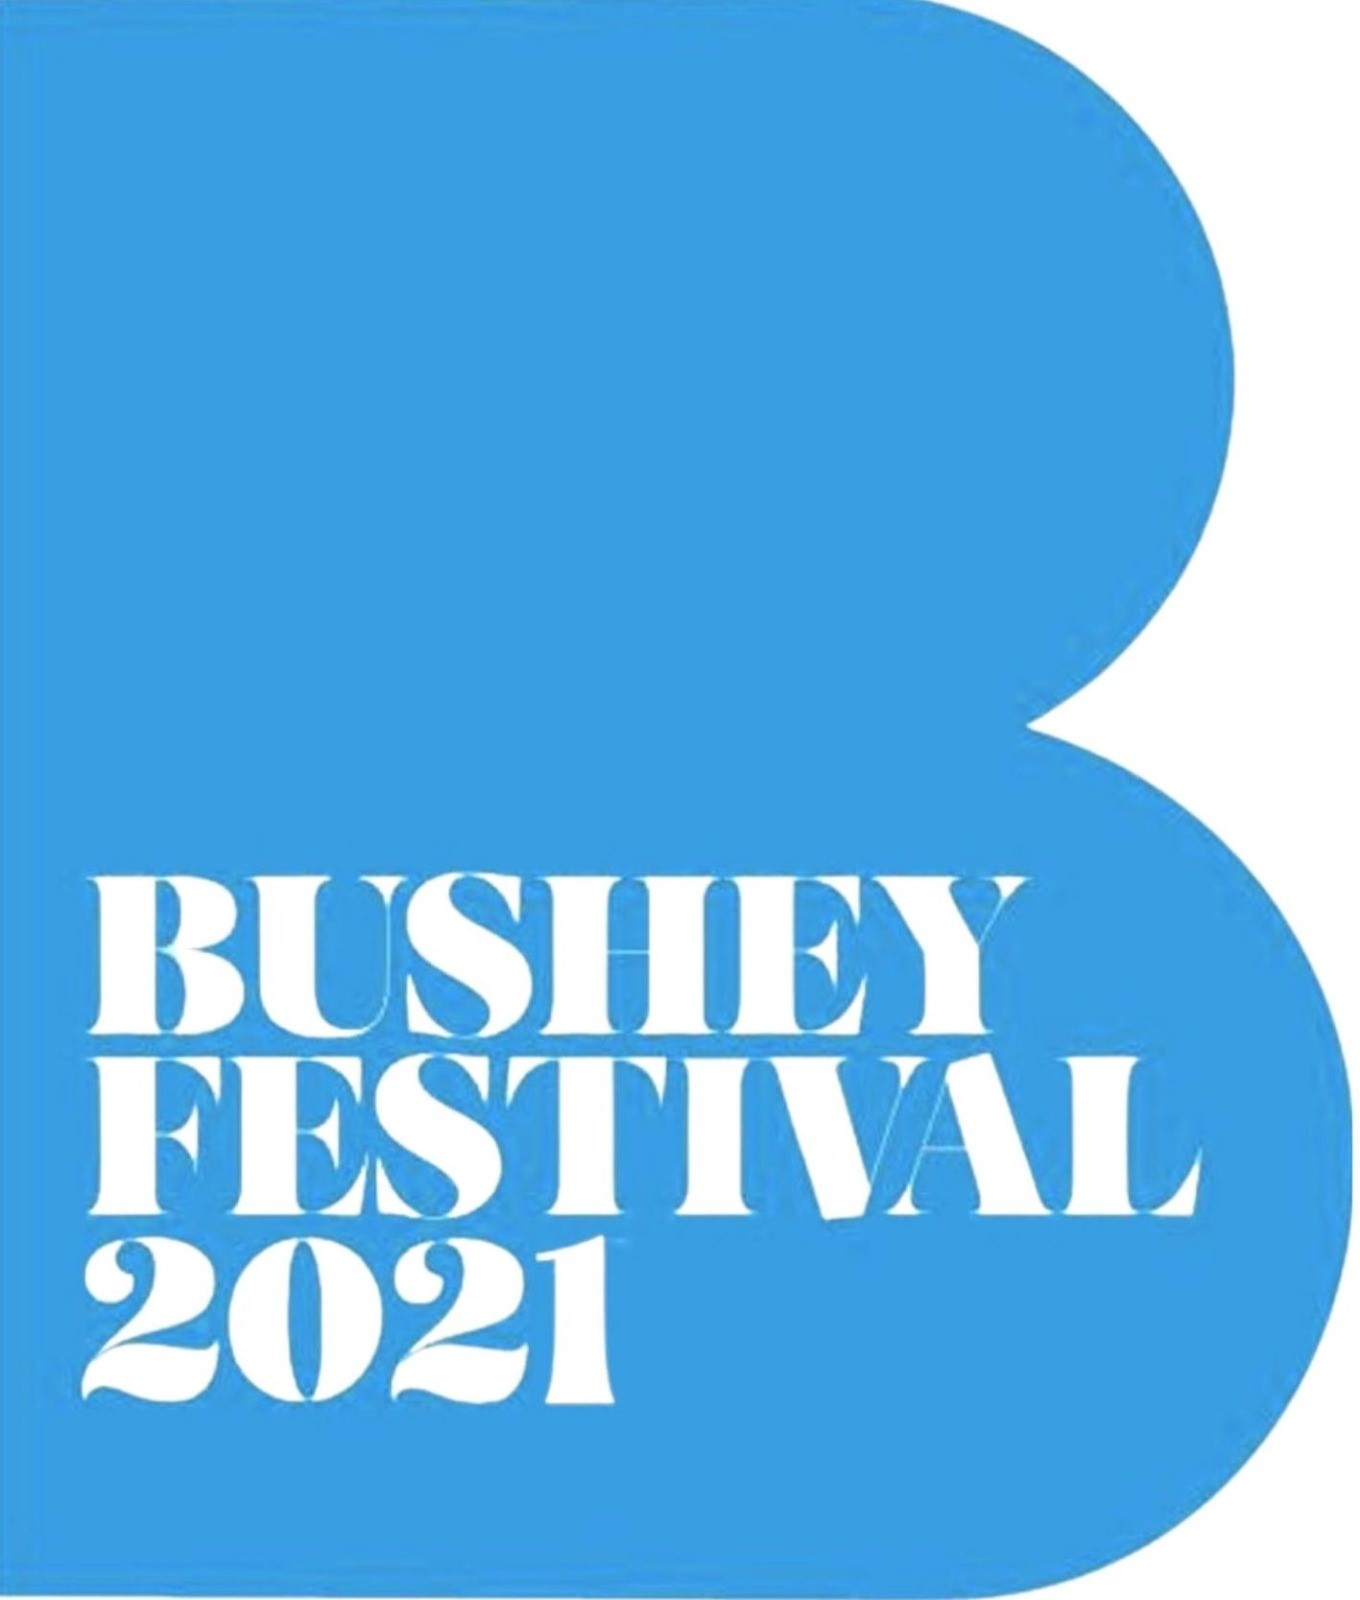 Bushey Festival Website